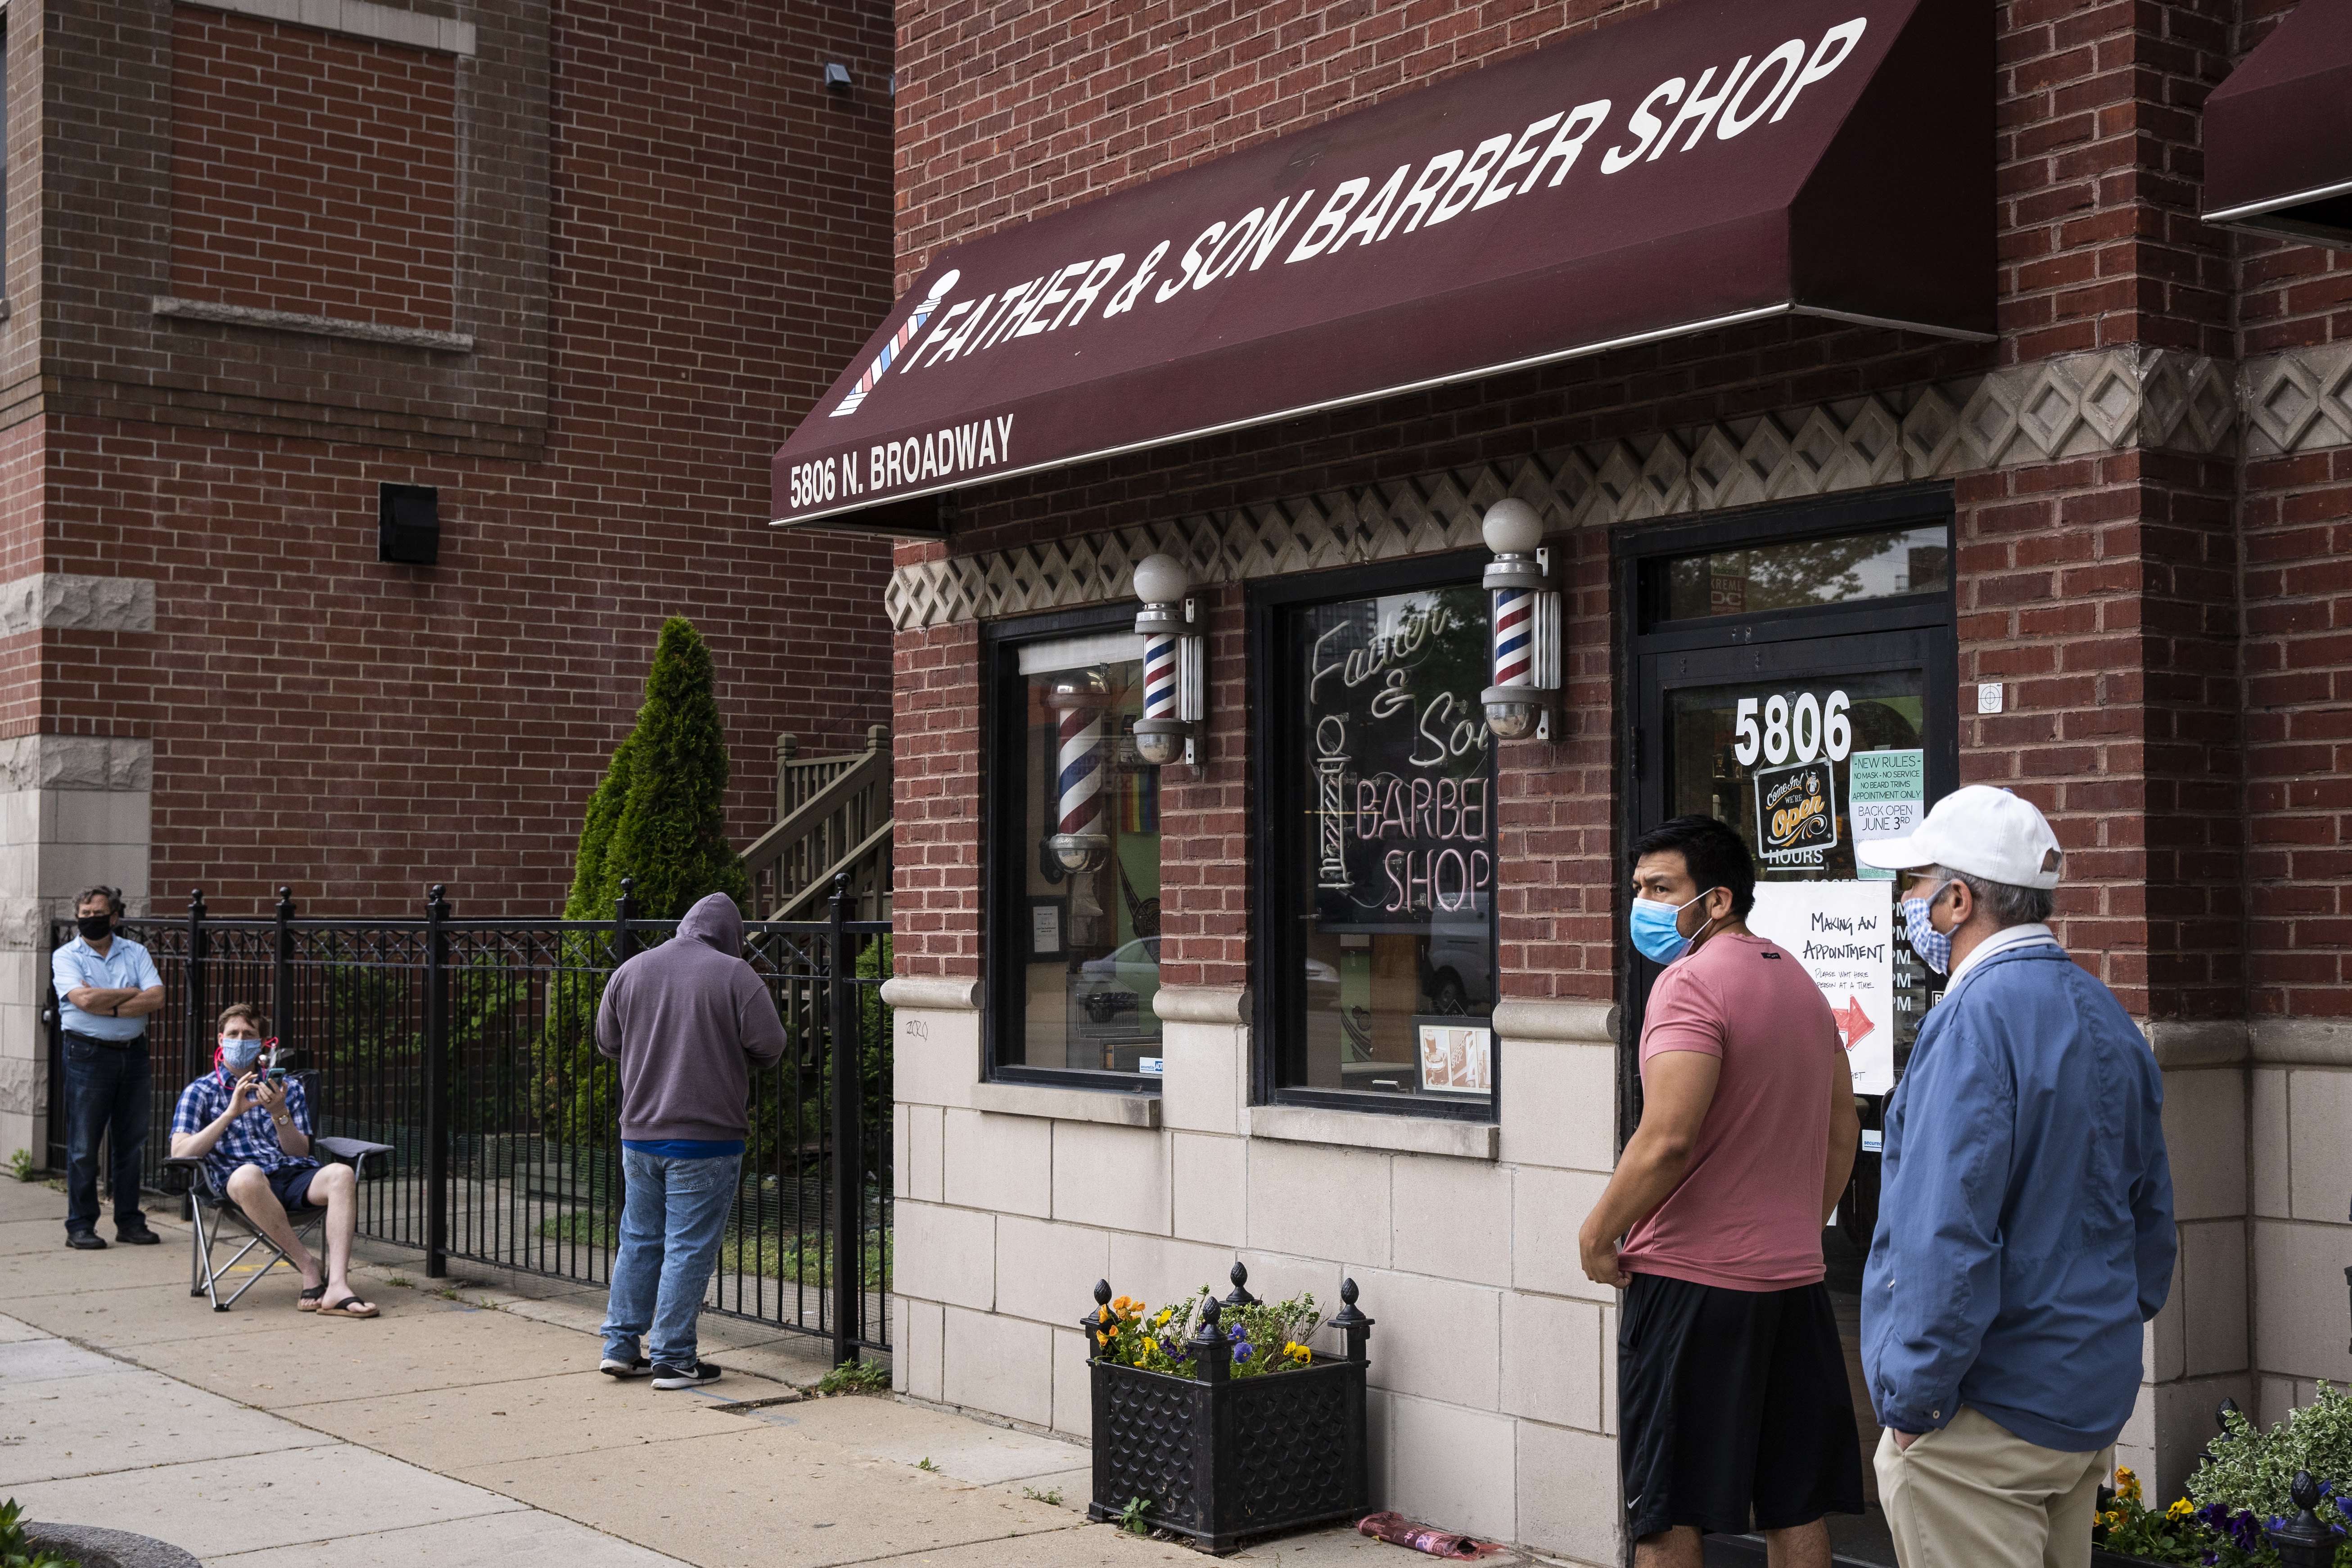 Men wait in line outside Father & Son Barber Shop at 5806 N. Broadway St. in Edgewater, Wednesday morning, June 3, 2020.